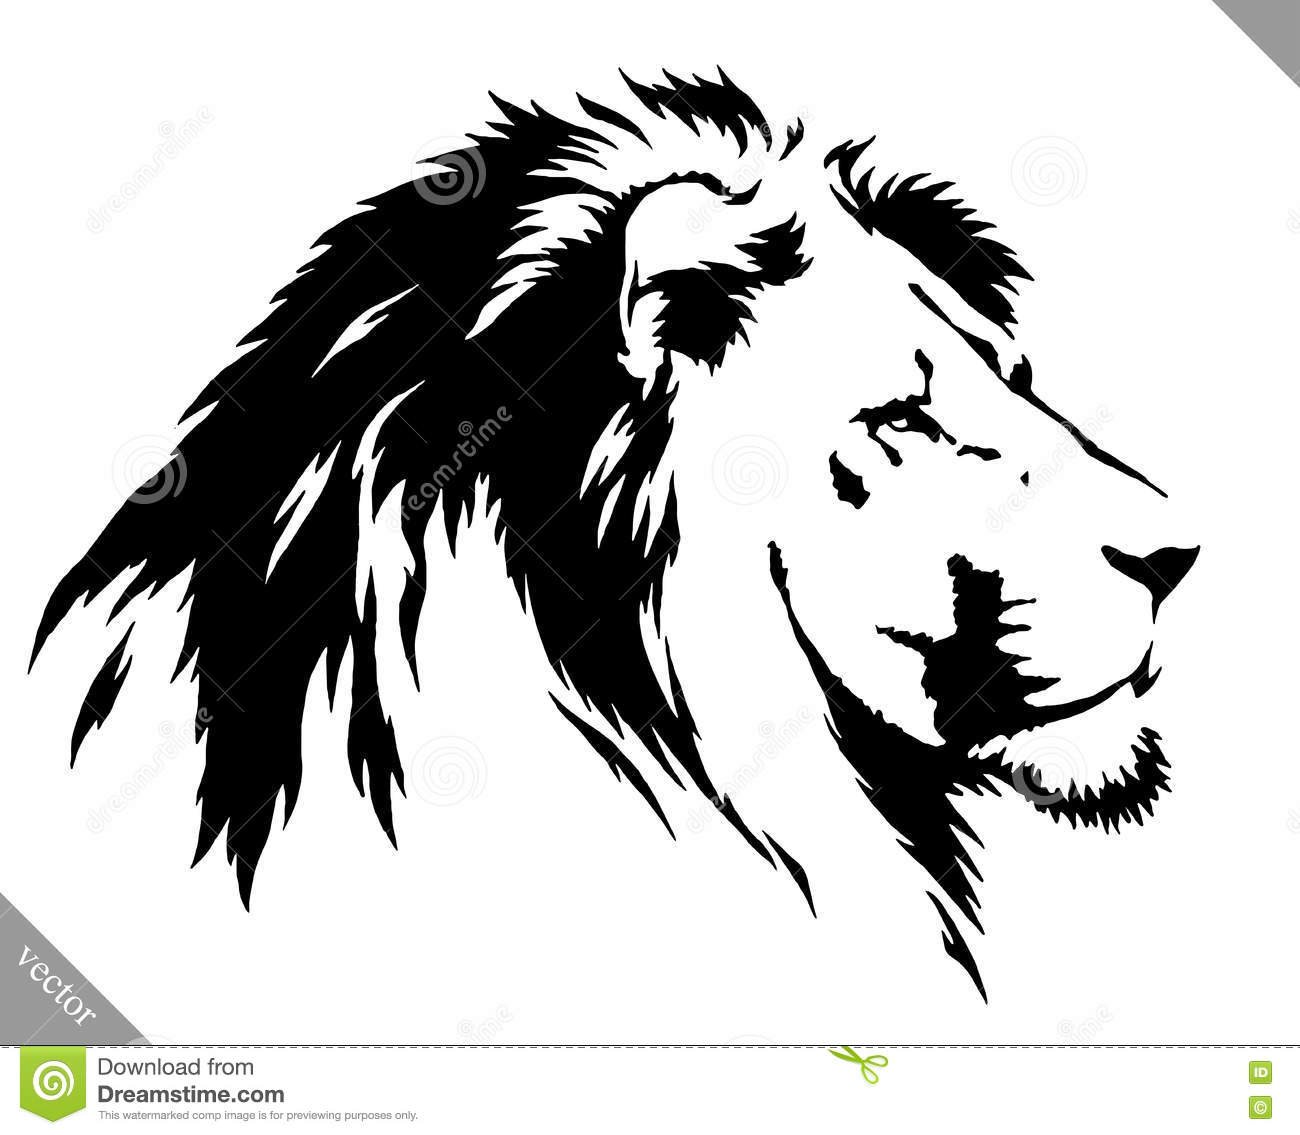 Lion Outline Painting / Easy and fun lion painting demo for black and white paint!